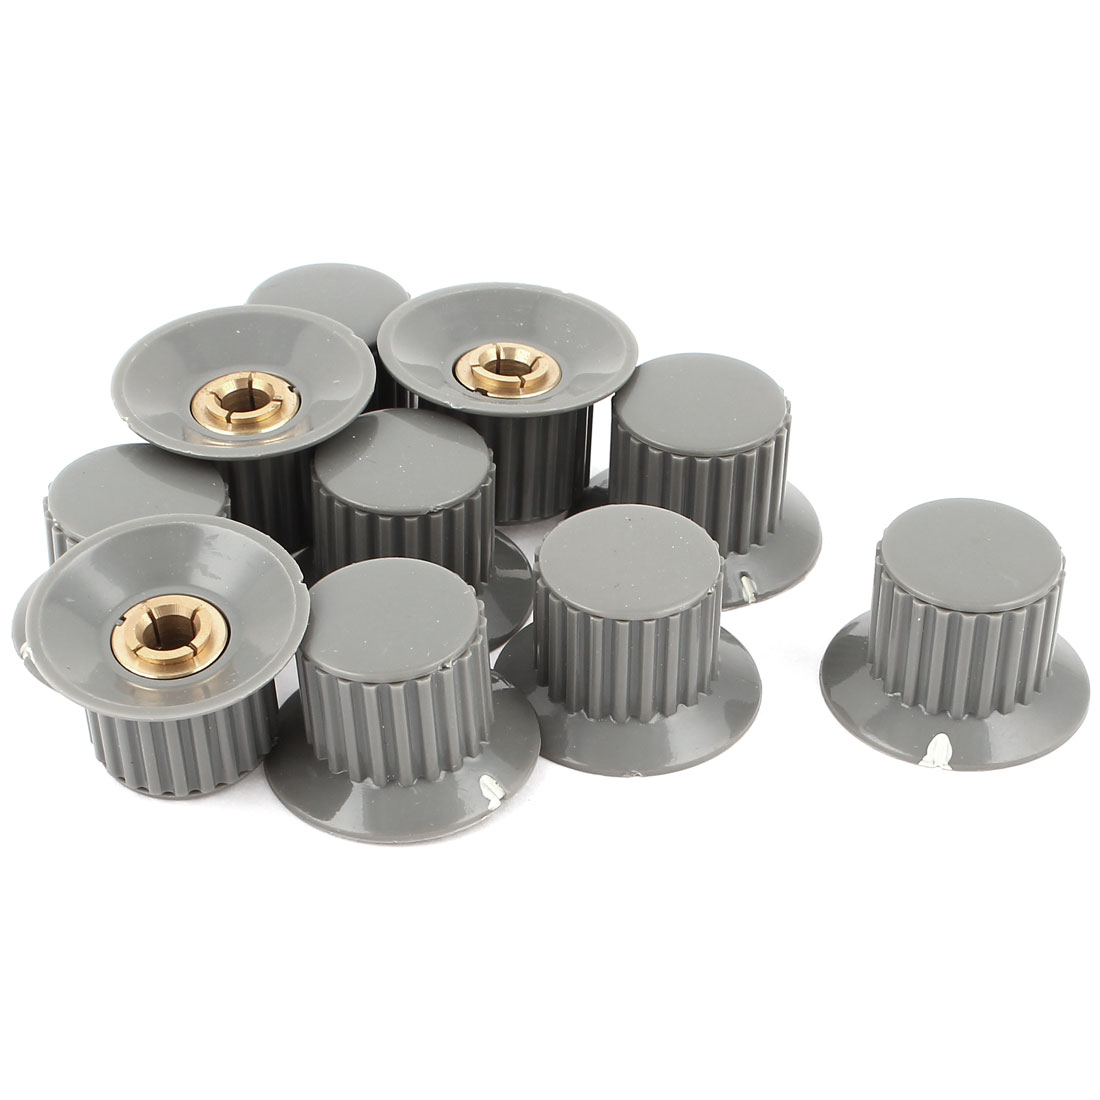 10pcs 6mm Shaft Insert Dia Brass Tone Core Potentiometer Control Knobs